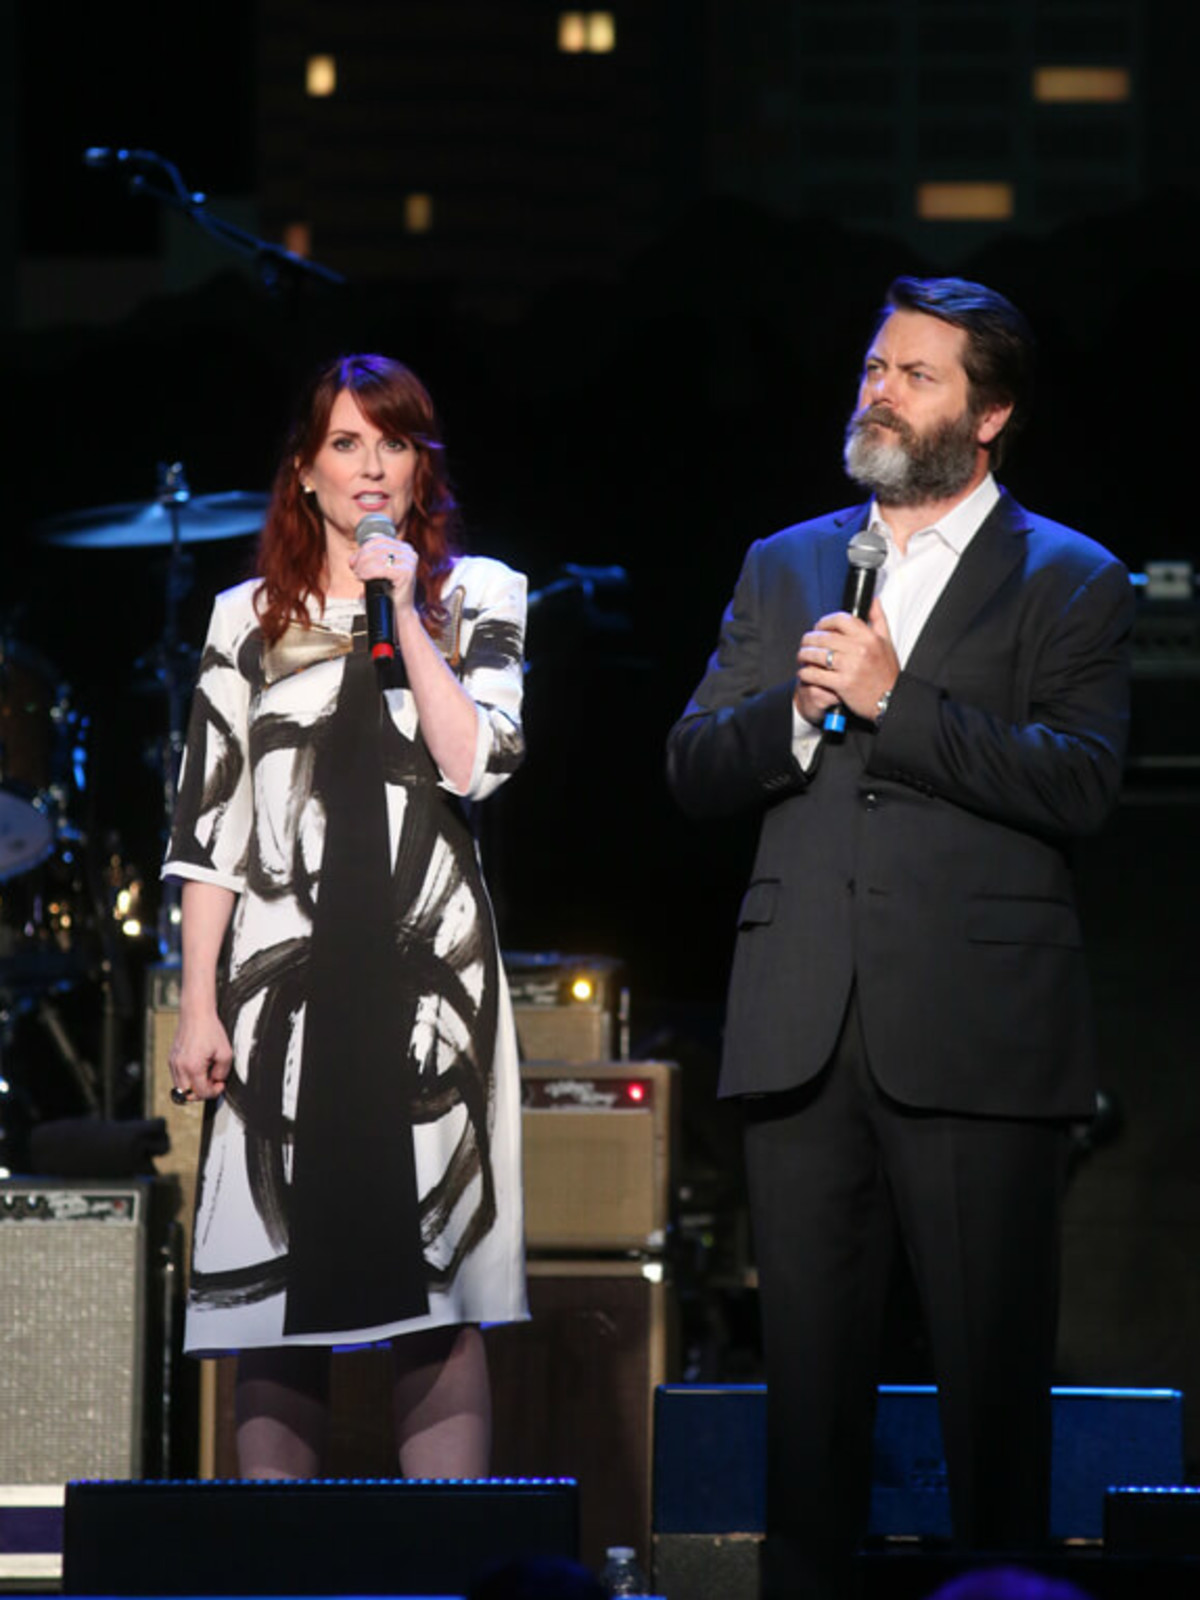 Austin City Limits Hall of Fame induction 2016 hosts Megan Mullally Nick Offerman